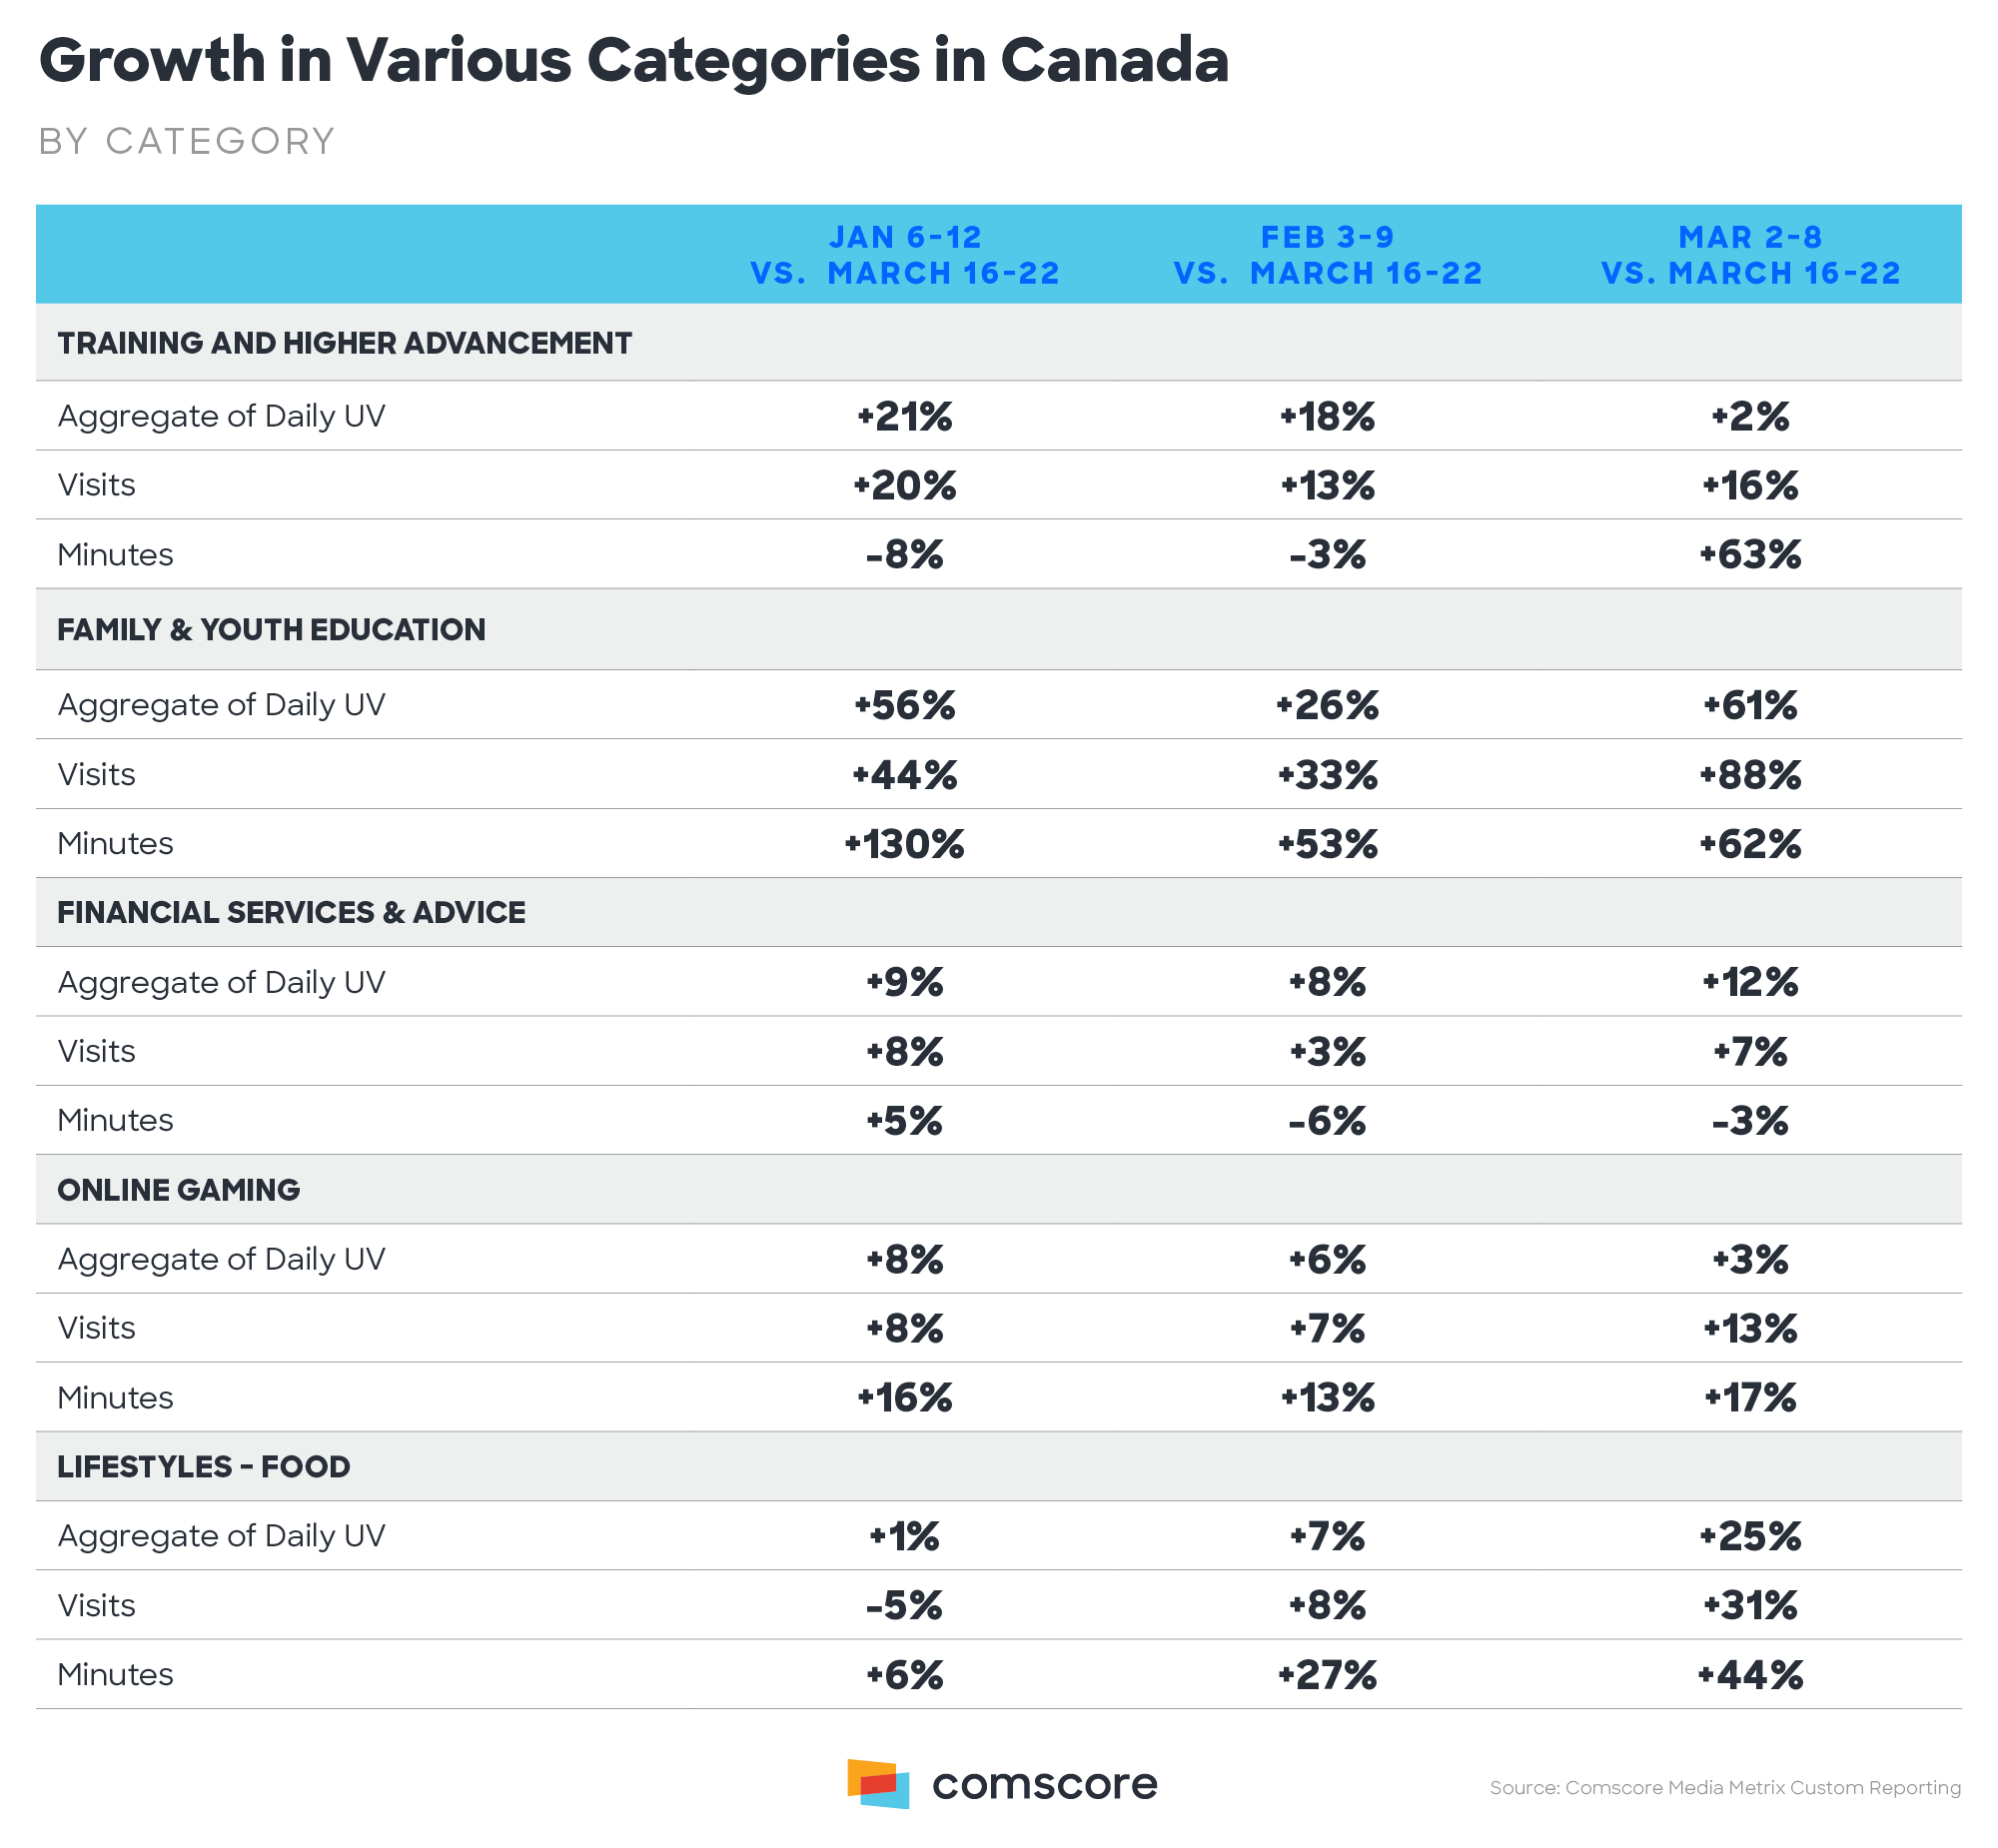 Growth in Various Categories in Canada